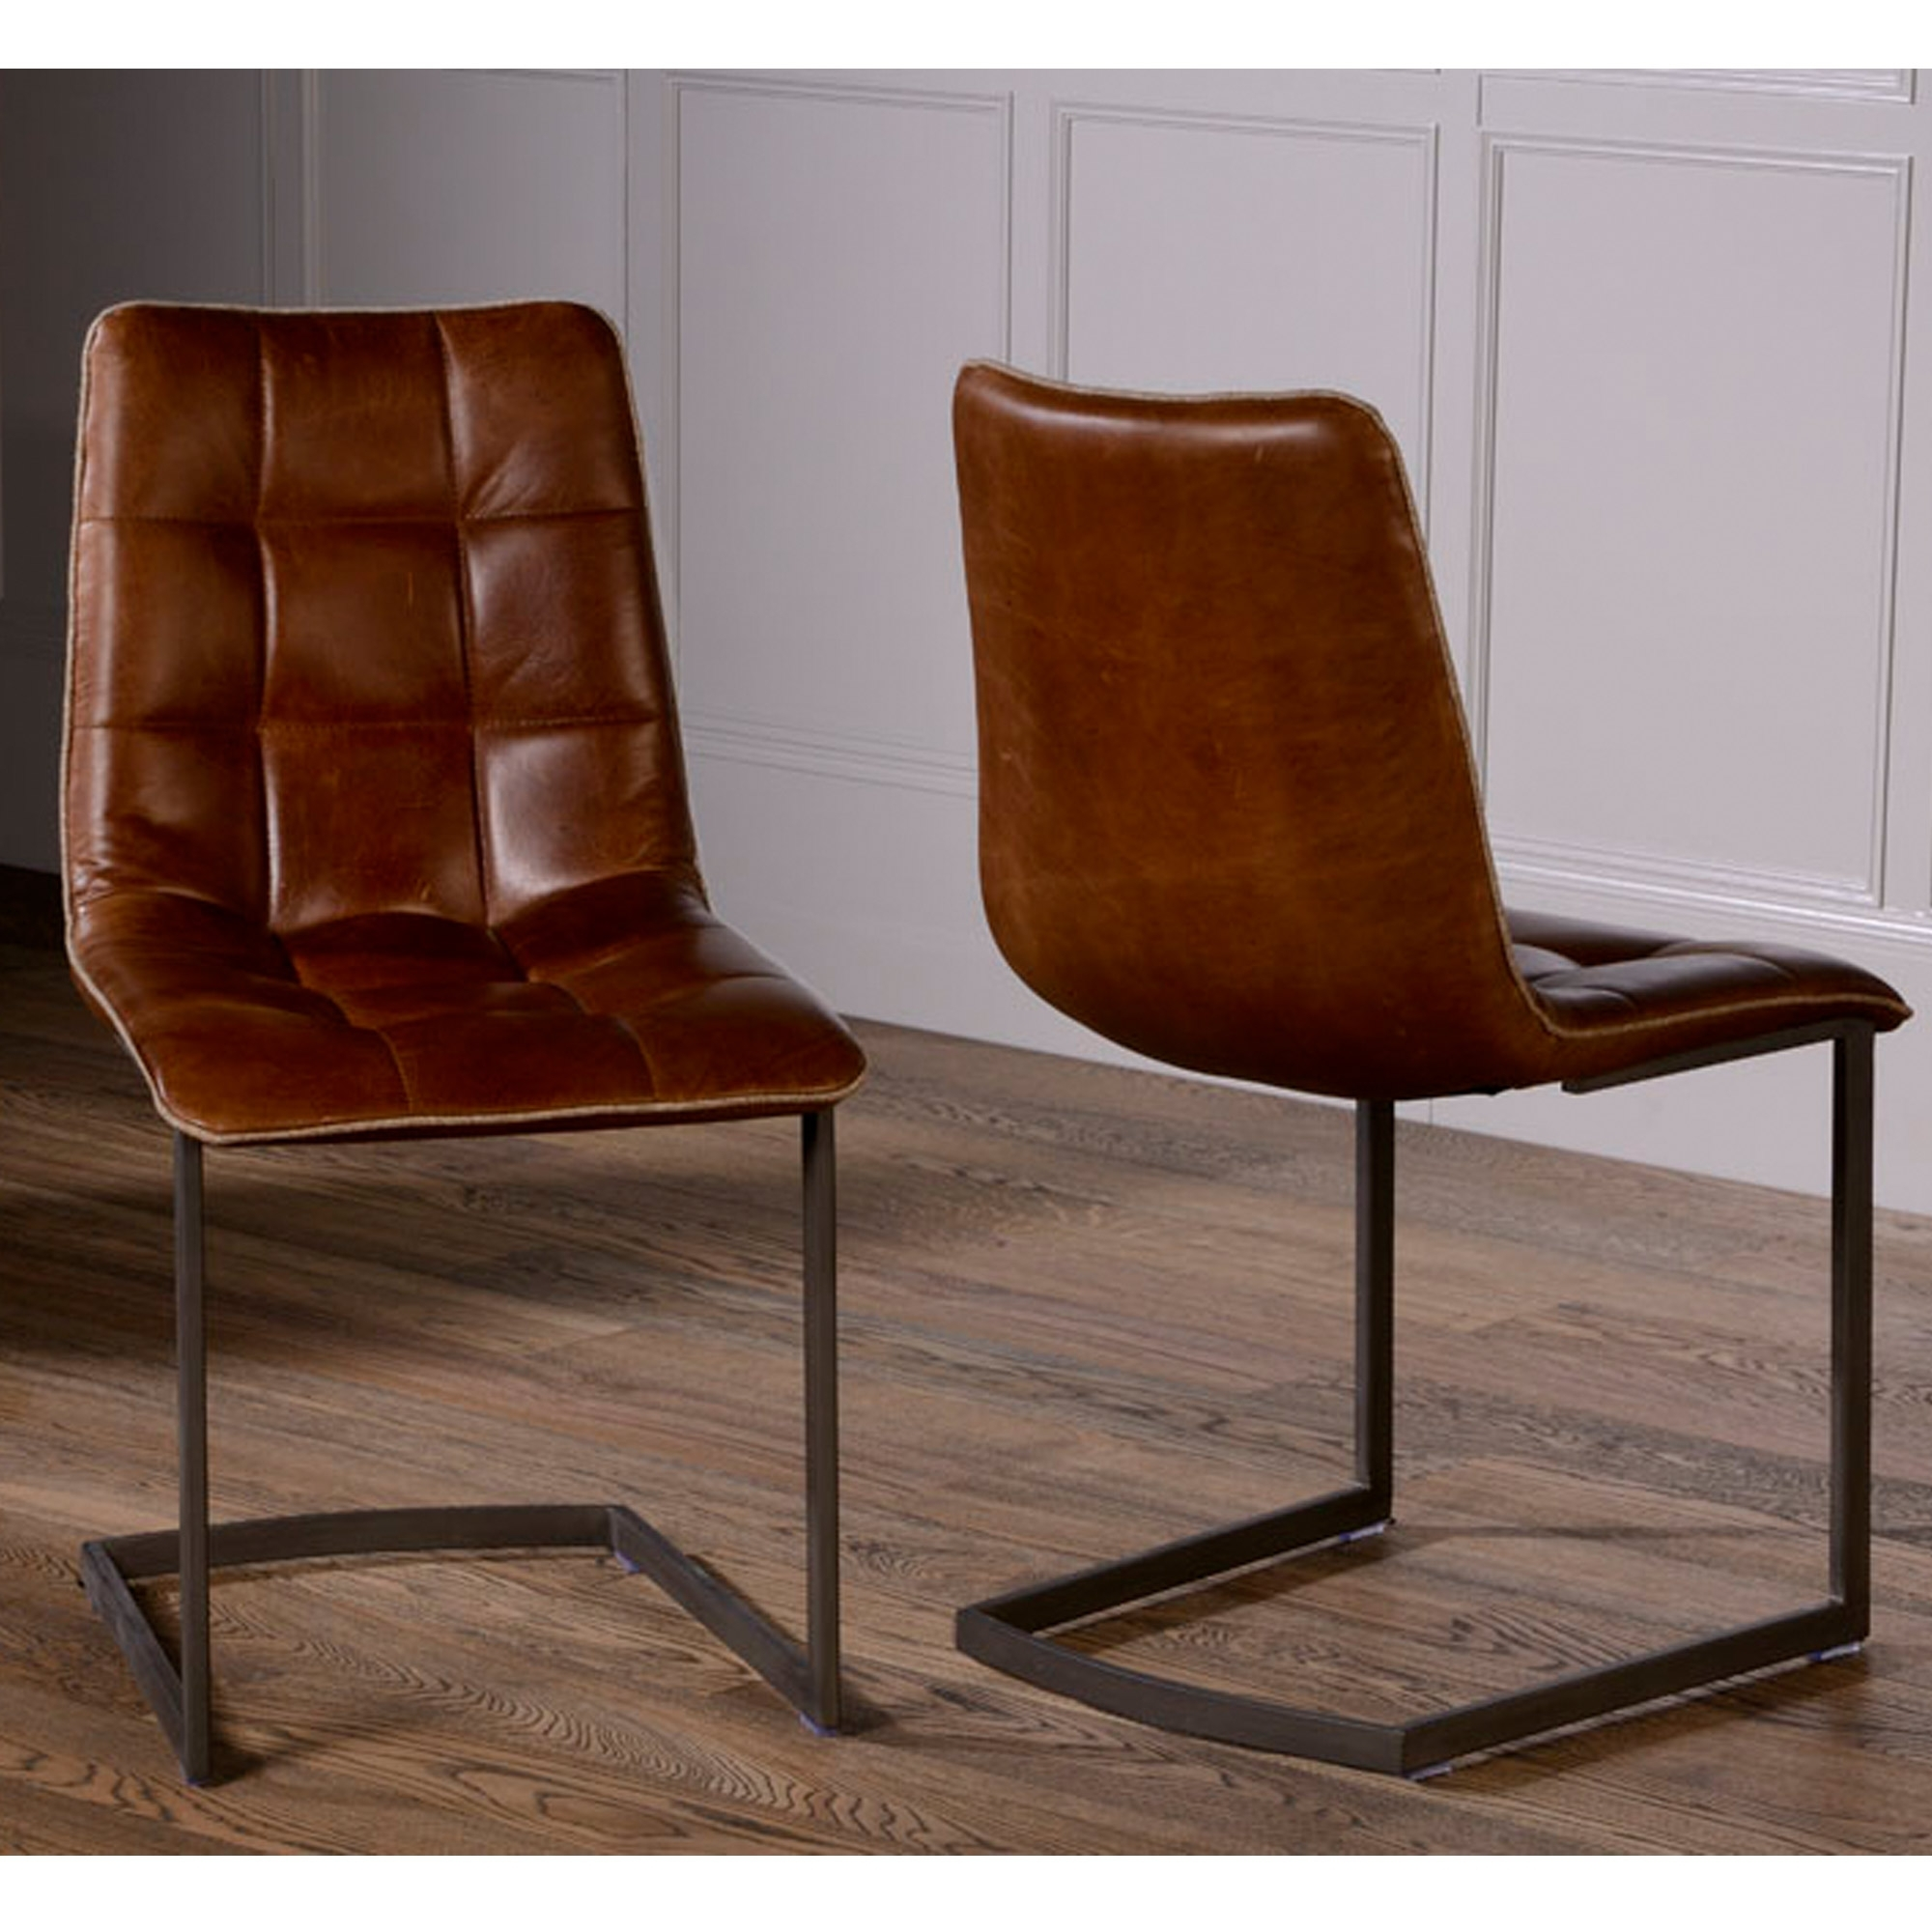 Brown Leather Dining Chairs Pertaining To Most Up To Date Related Keywords Suggestions For Leather Dining Chairs (View 18 of 25)